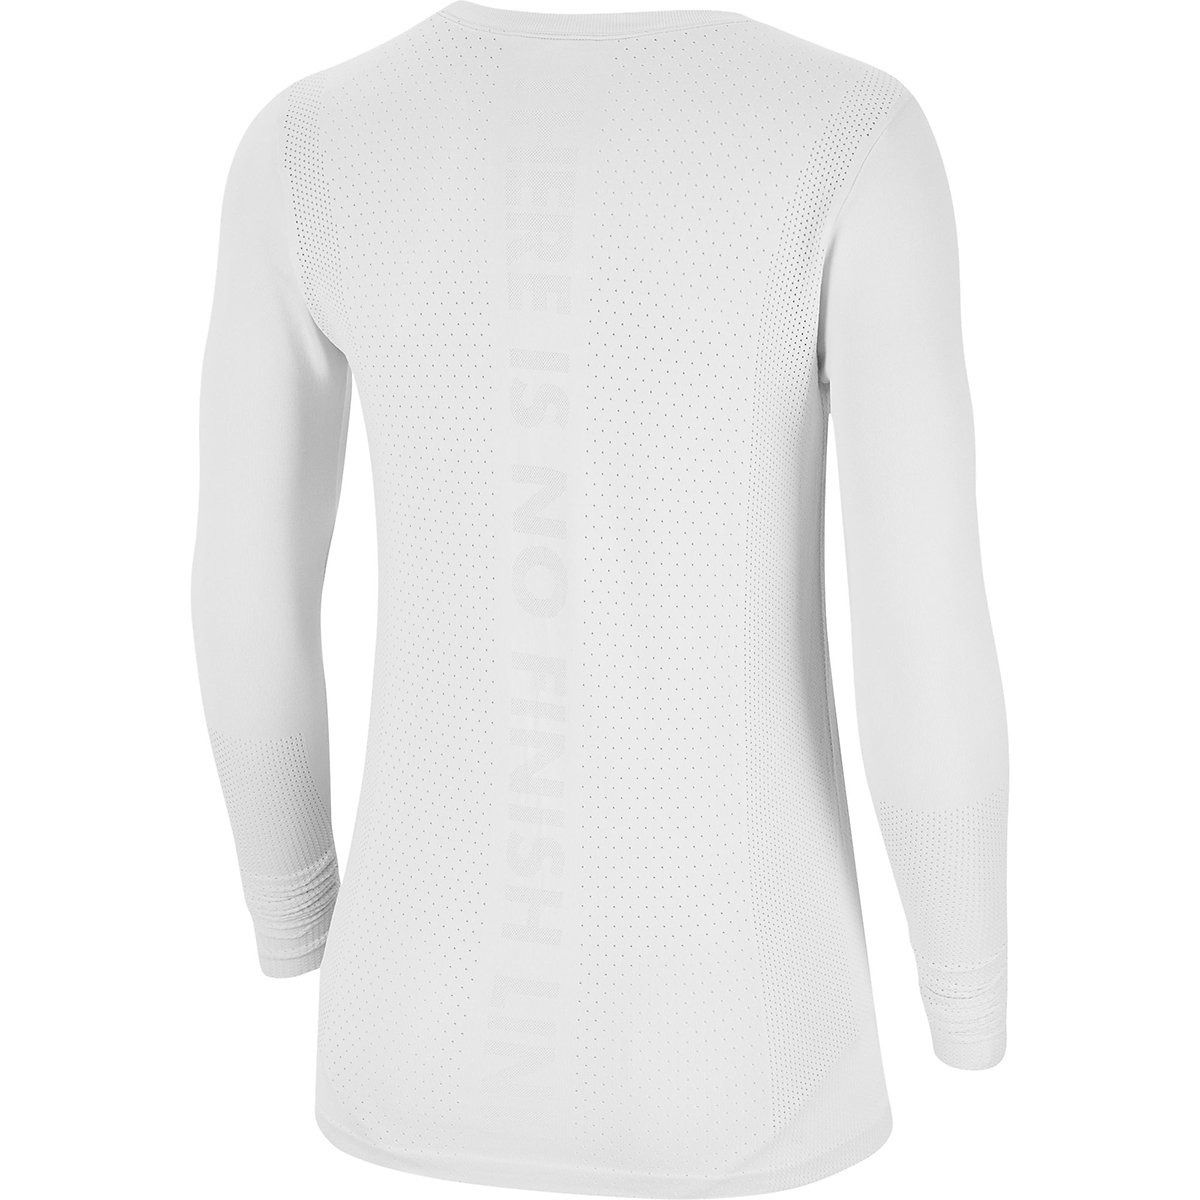 Women's Nike Infinite Running Top Long Sleeve - Color: White - Size: XS, White, large, image 4